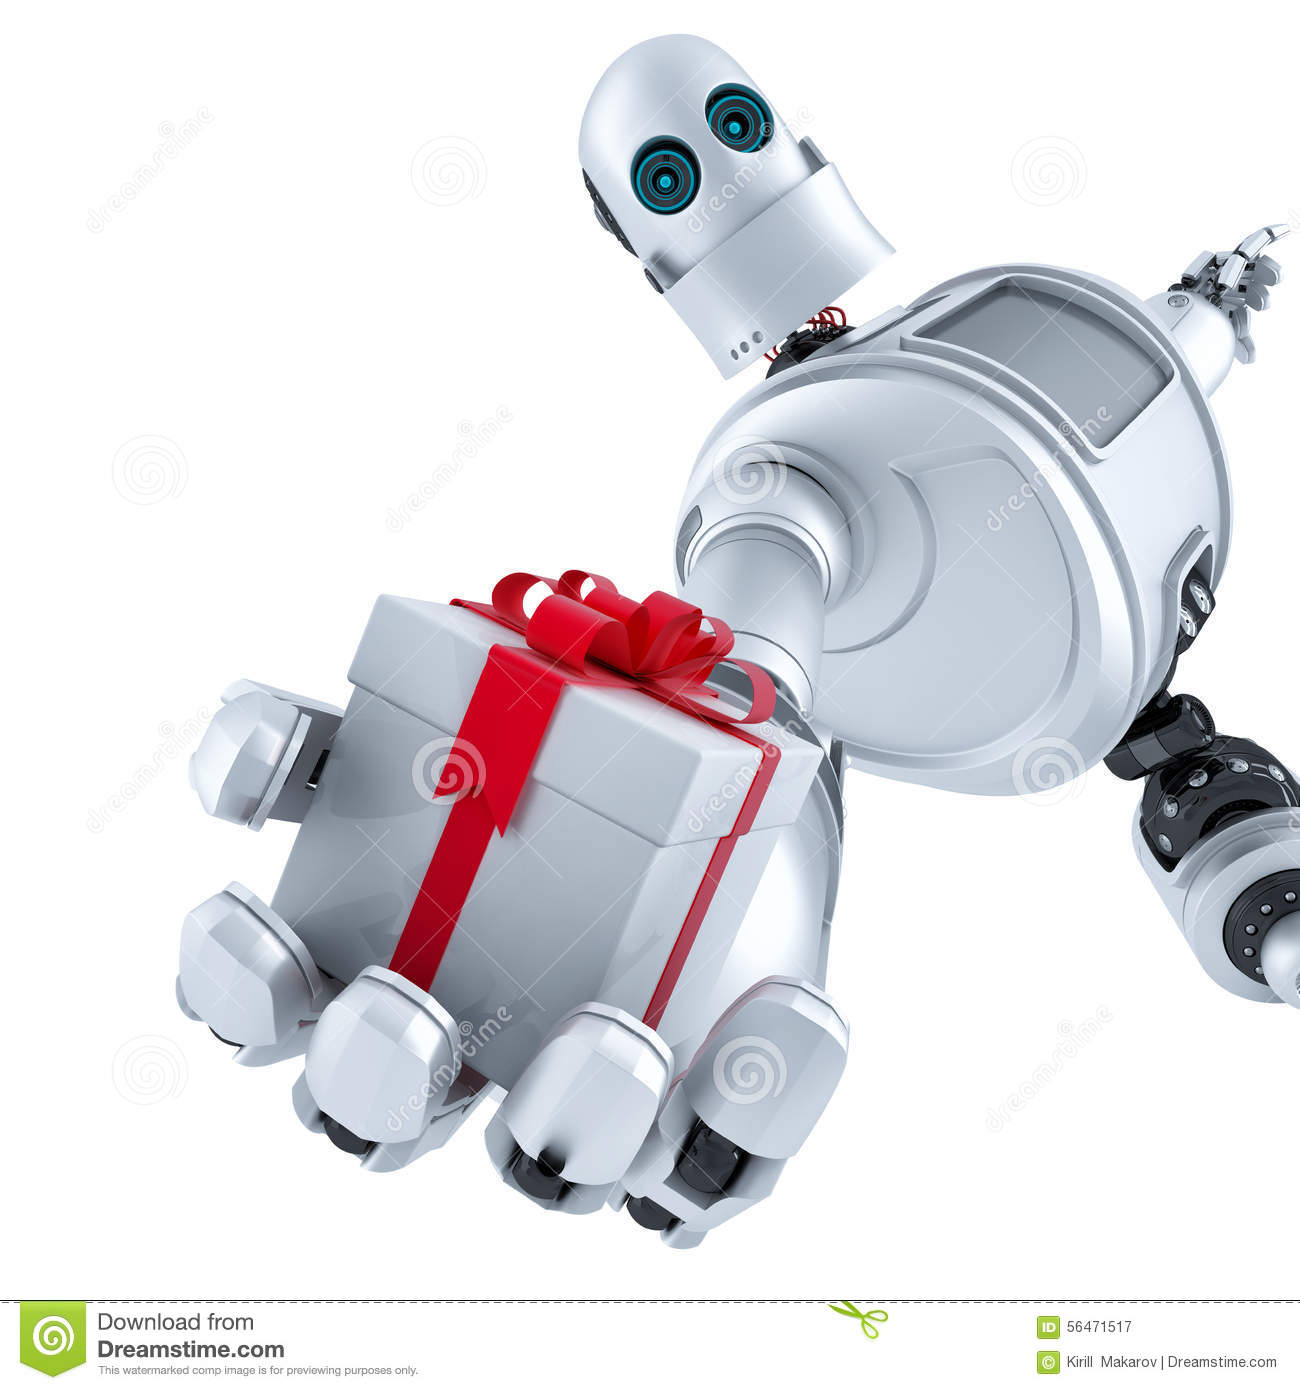 the development of the robots essay The many ethical implications of emerging technologies  sa forum is an invited essay from experts on topical issues  a development which can be.